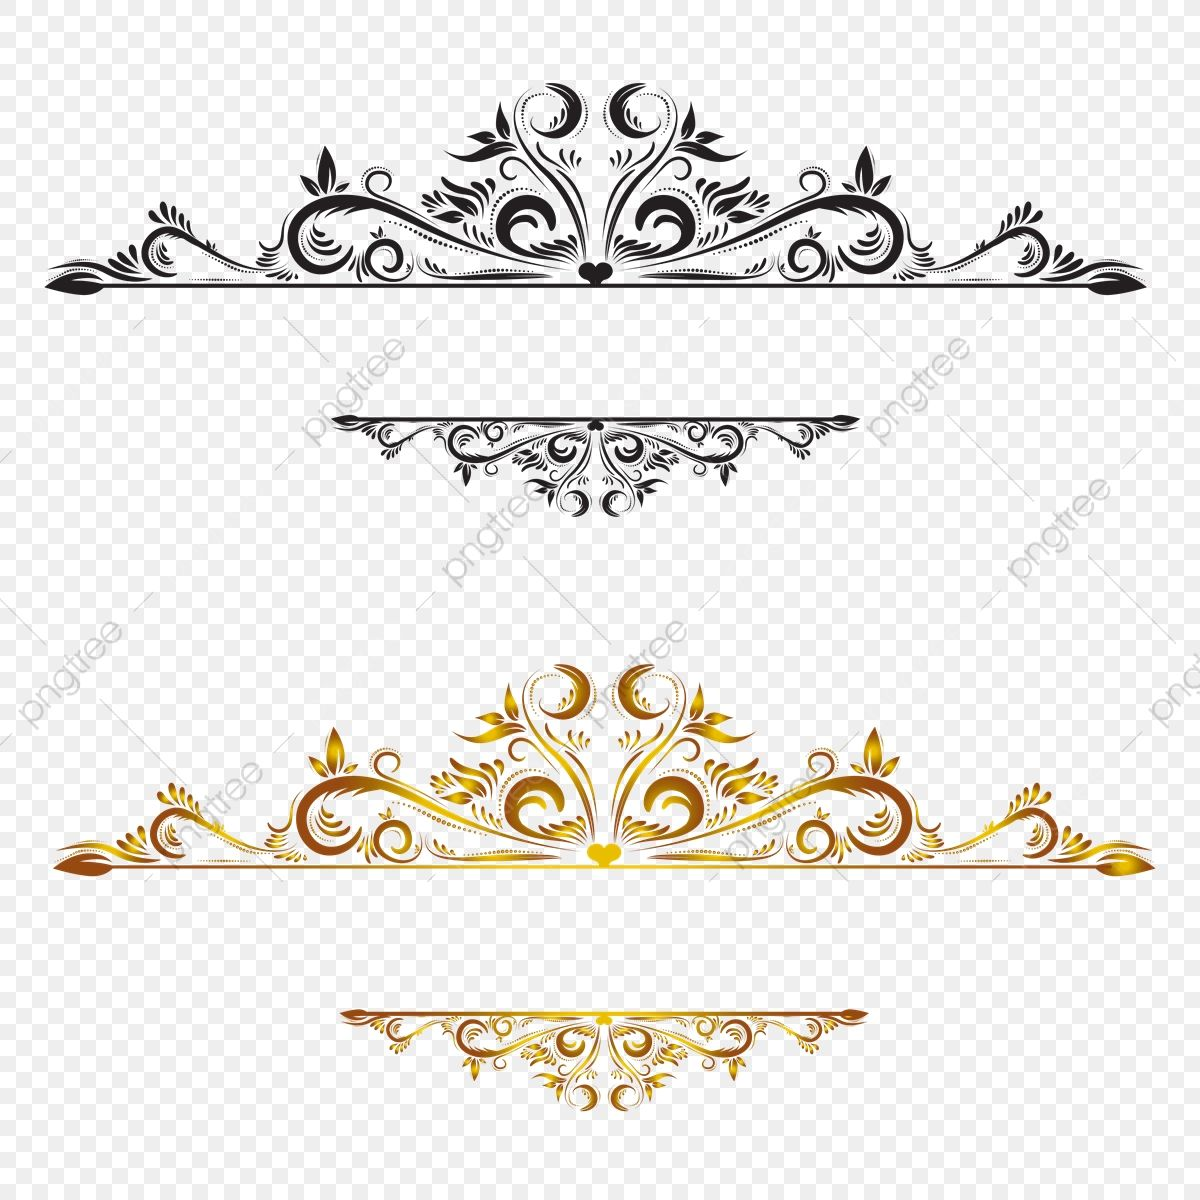 Vintage Border Lace Pattern Border Small Elements Png And Vector With Transparent Background For Fr In 2020 Vintage Borders Logo Design Free Templates Free Clip Art